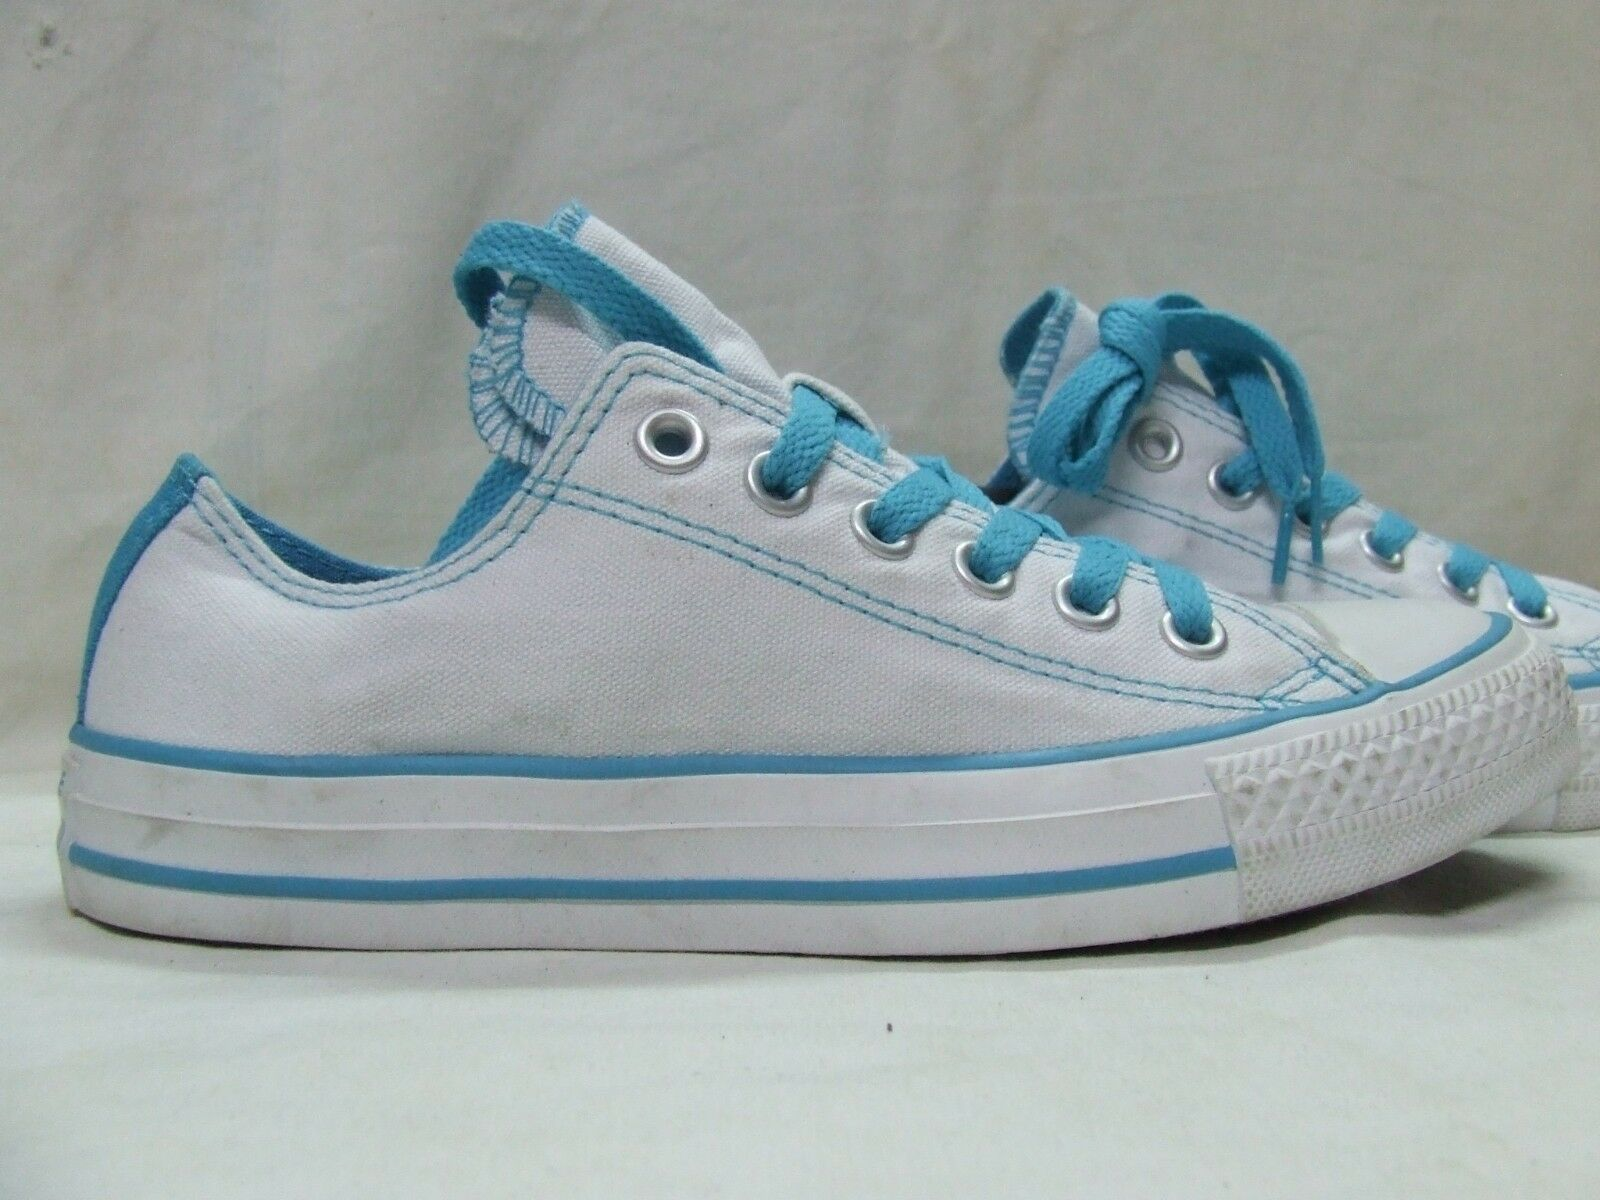 CHAUSSURES FEMME VINTAGE CONVERSE - ALL STAR taille 7 - CONVERSE 37,5 (144) 15ed3d